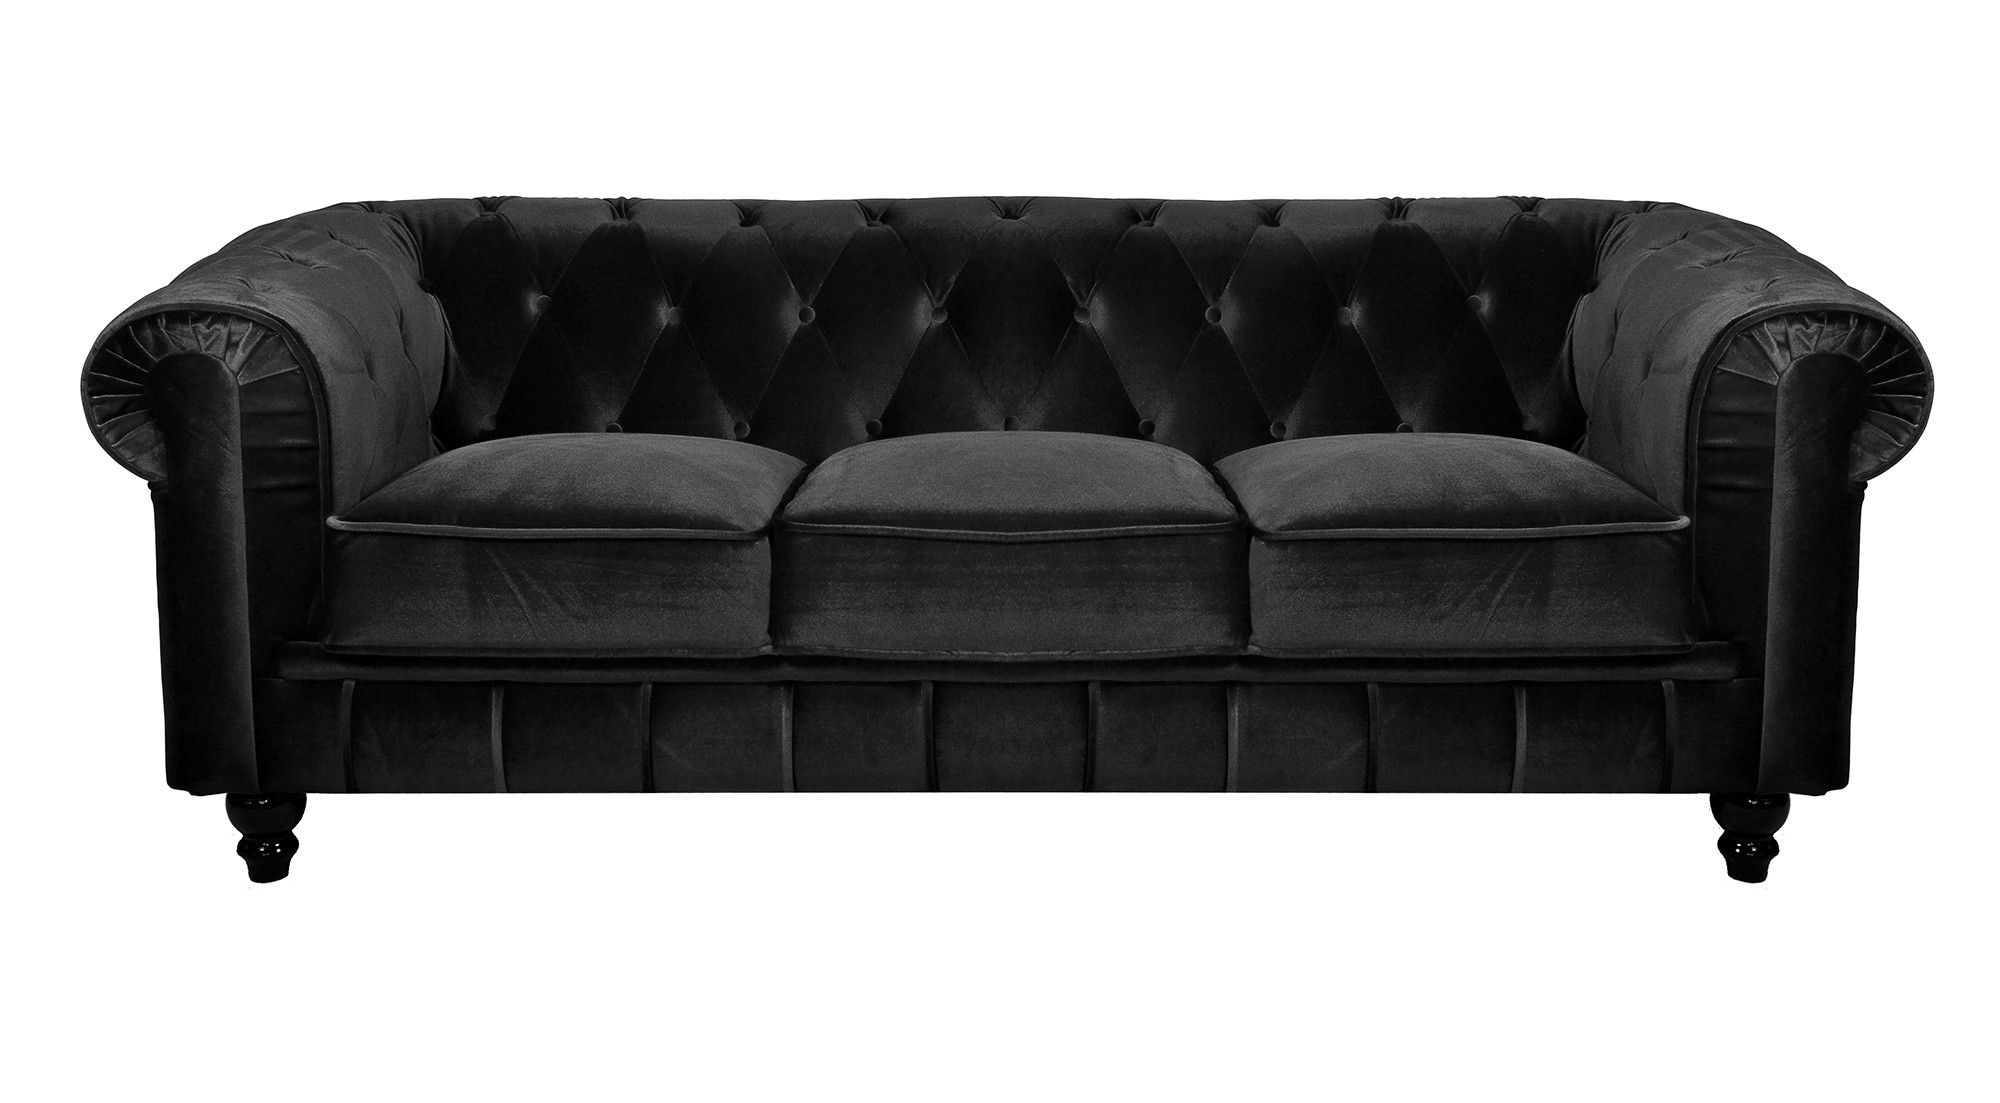 canape chesterfield convertible meilleures images d. Black Bedroom Furniture Sets. Home Design Ideas